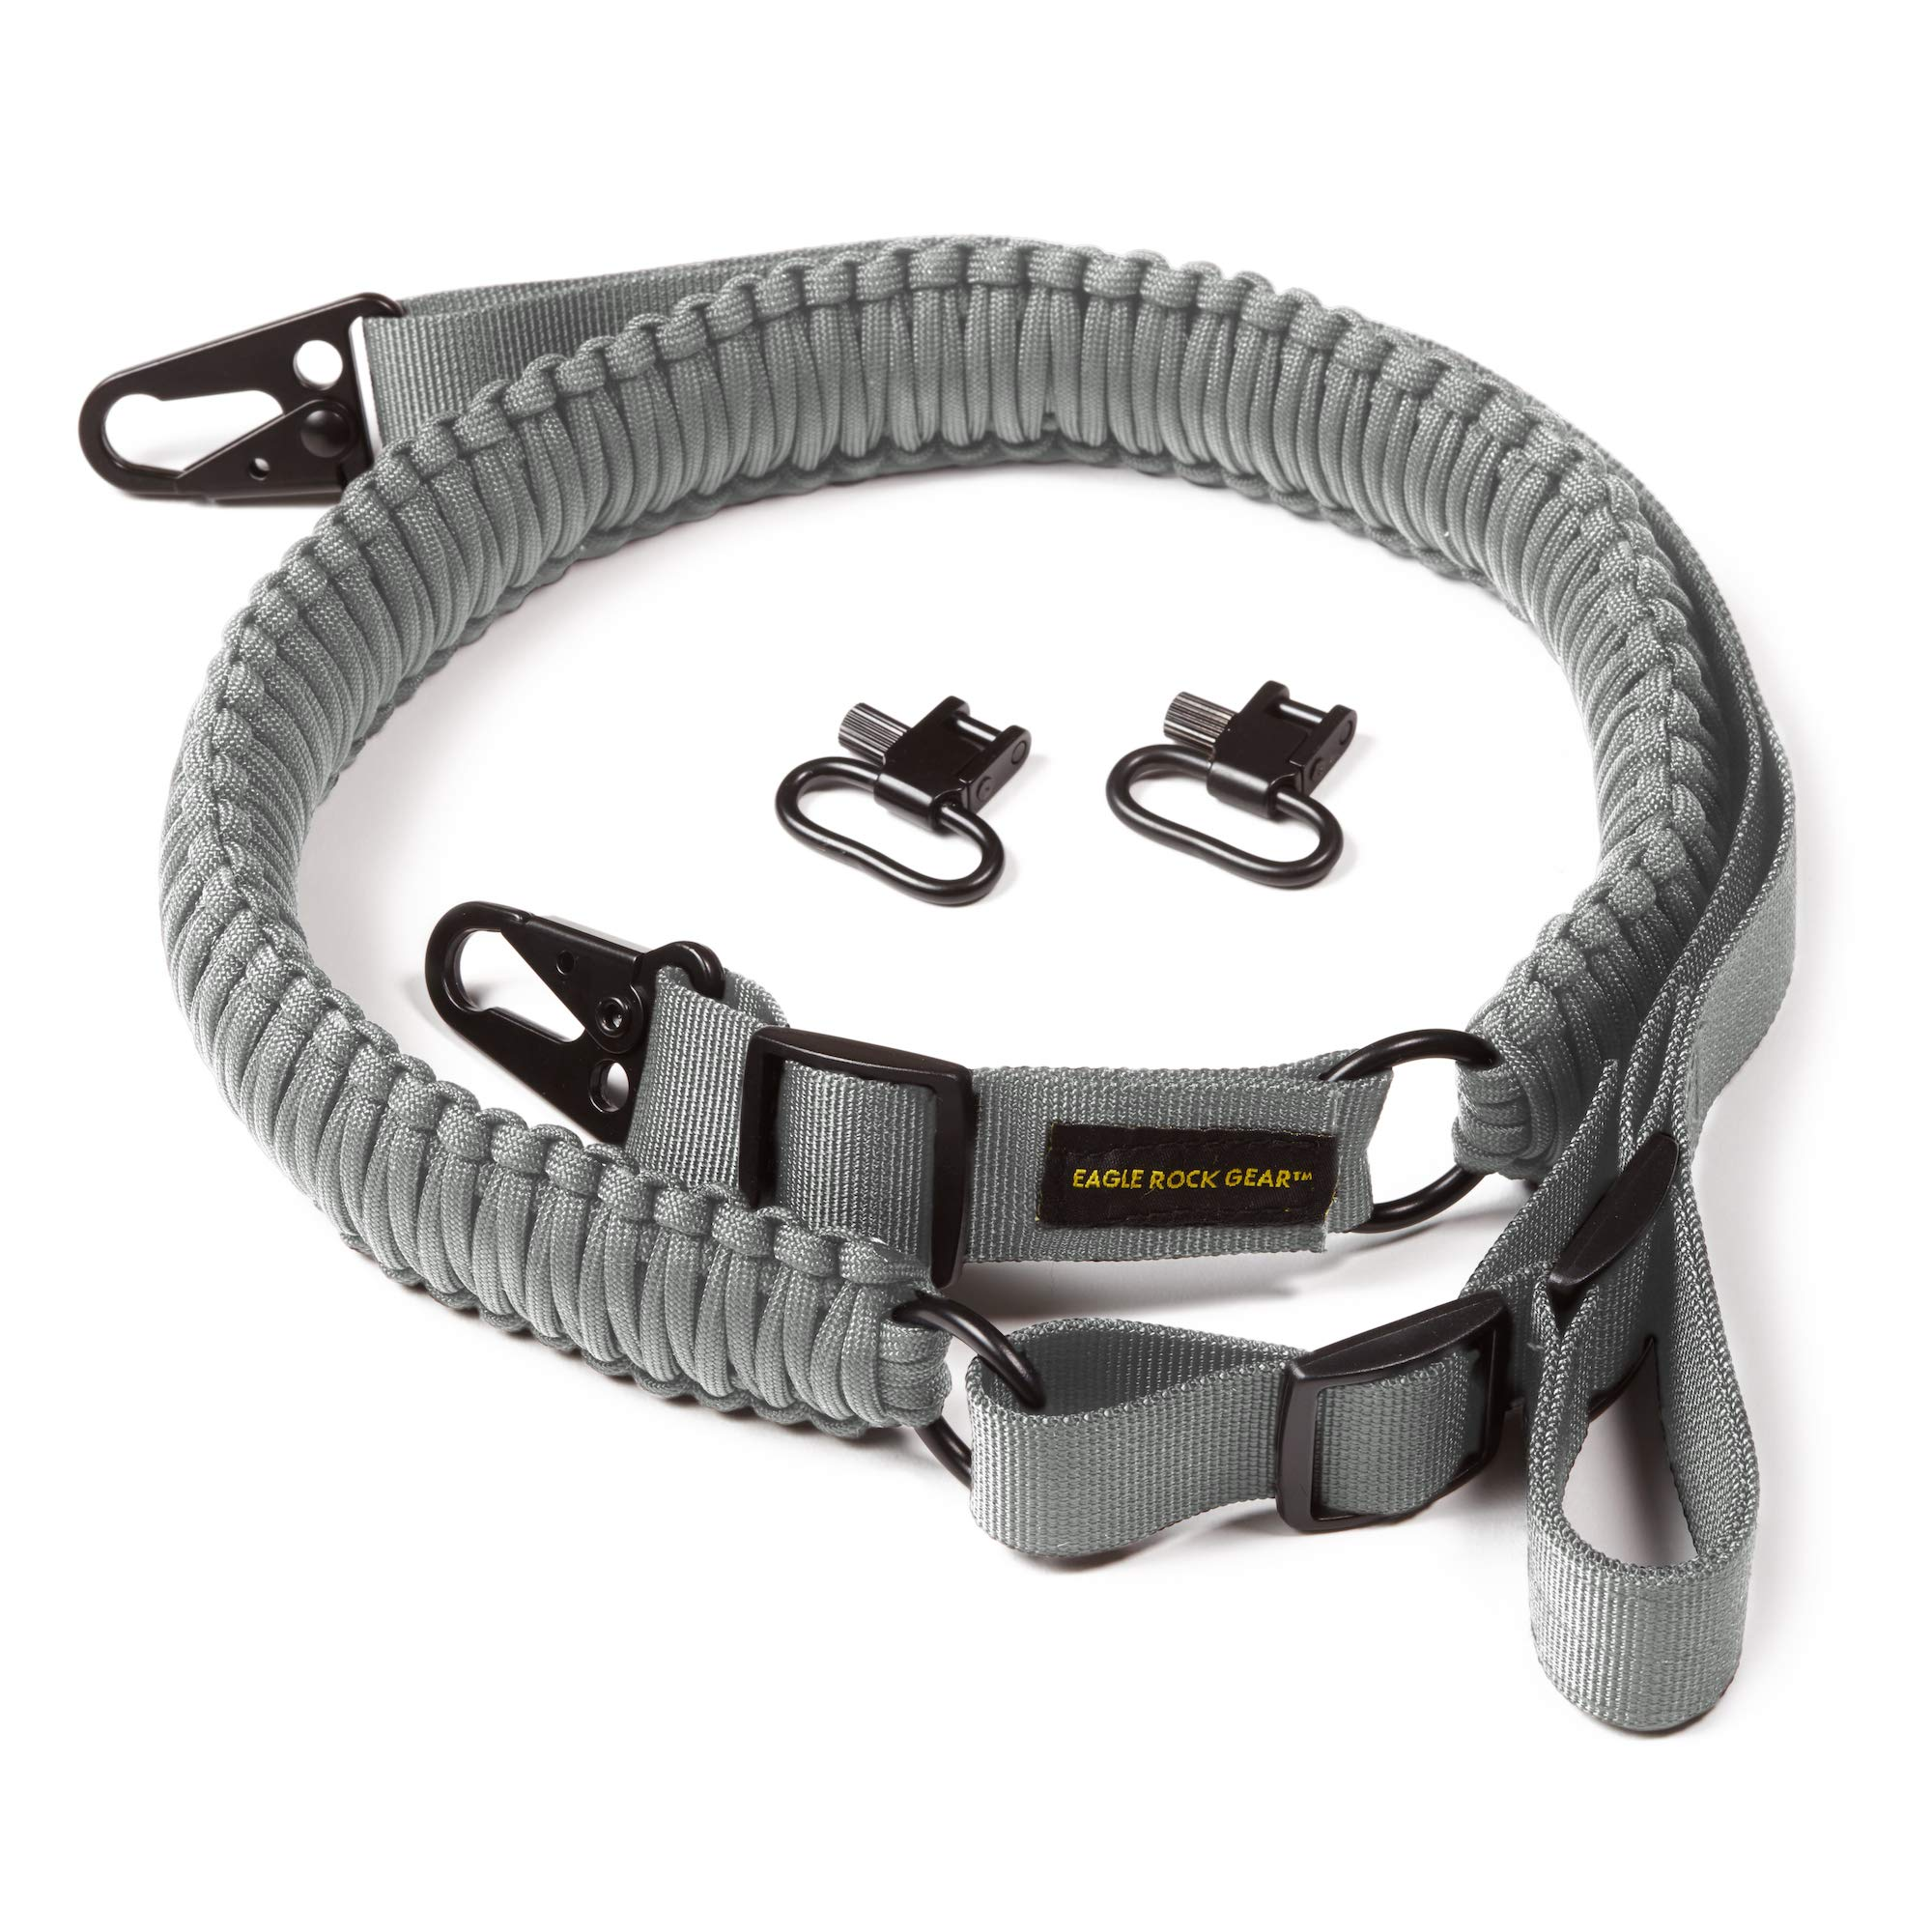 Eagle Rock Gear 550 Paracord 2 Point Gun Sling for Rifles, Shotguns, Crossbows, Airsoft - with Easy Adjustable Strap, HK Clips, Swivels (Gray) by Eagle Rock Gear